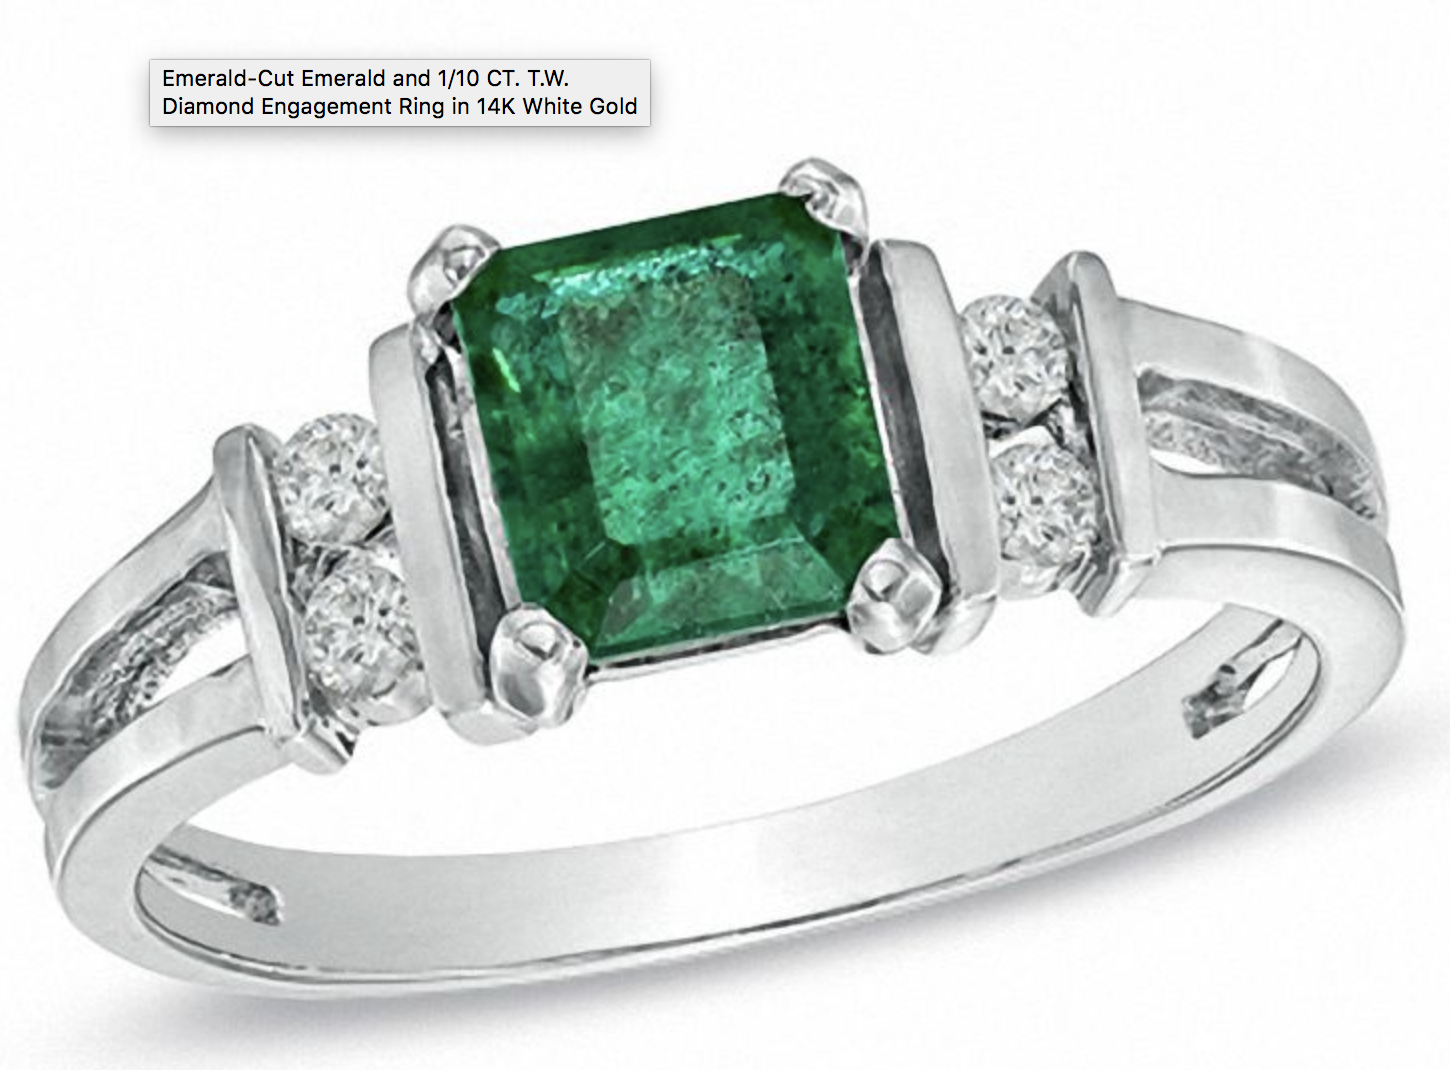 Emerald-Cut Emerald and 1/10 CT. T.W. Diamond Engagement Ring in 14K White Gold